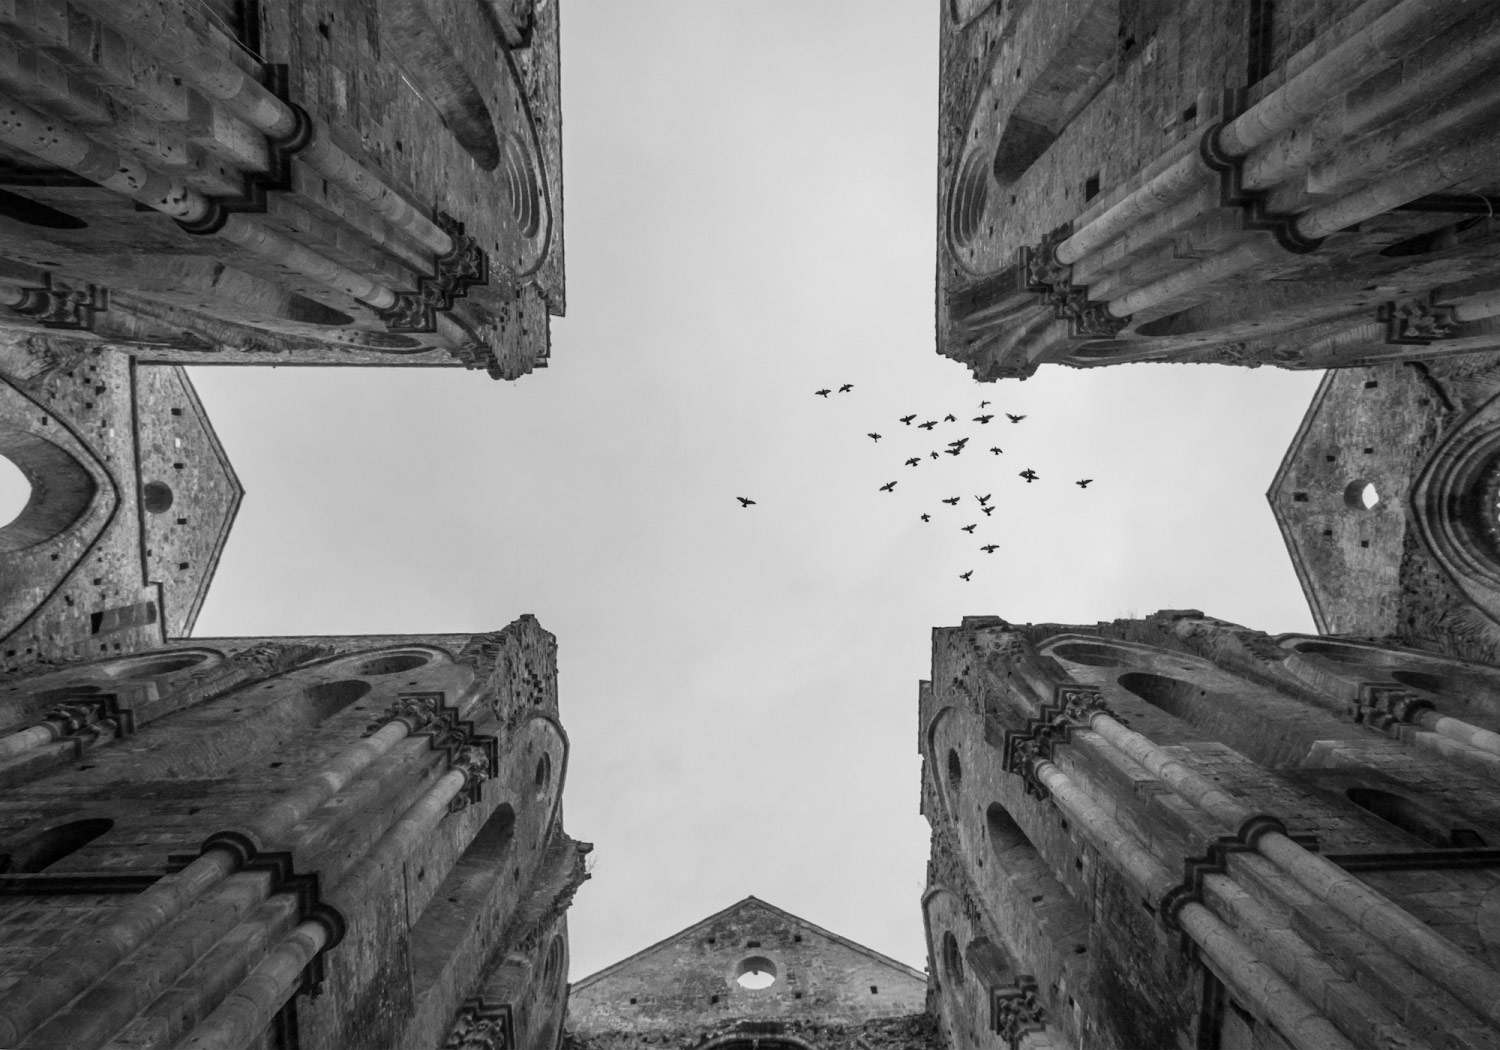 Sacred Sky, © Valerio MEI, 2nd Place, Non-Professional - Architectural, Zebra Awards - TZIPAC Black and White Photographer of the Year